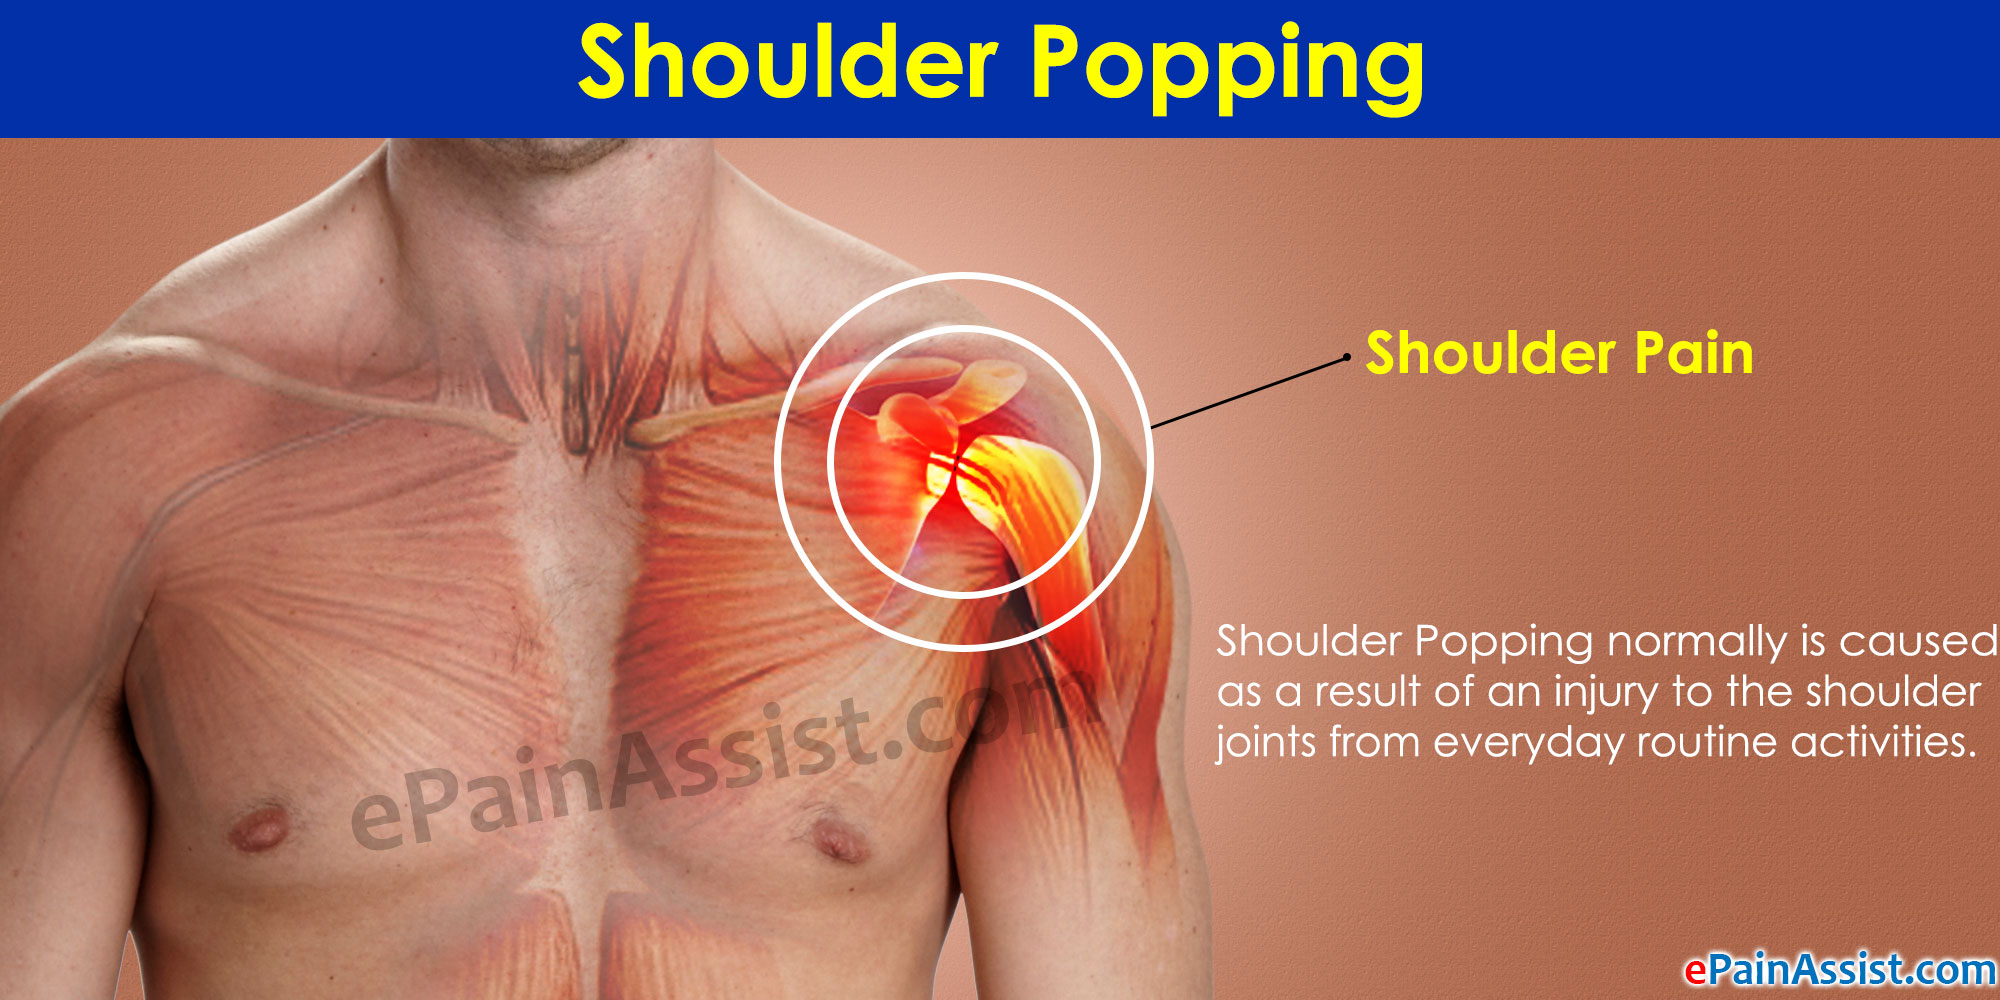 Shoulder Popping Causes And Treatment